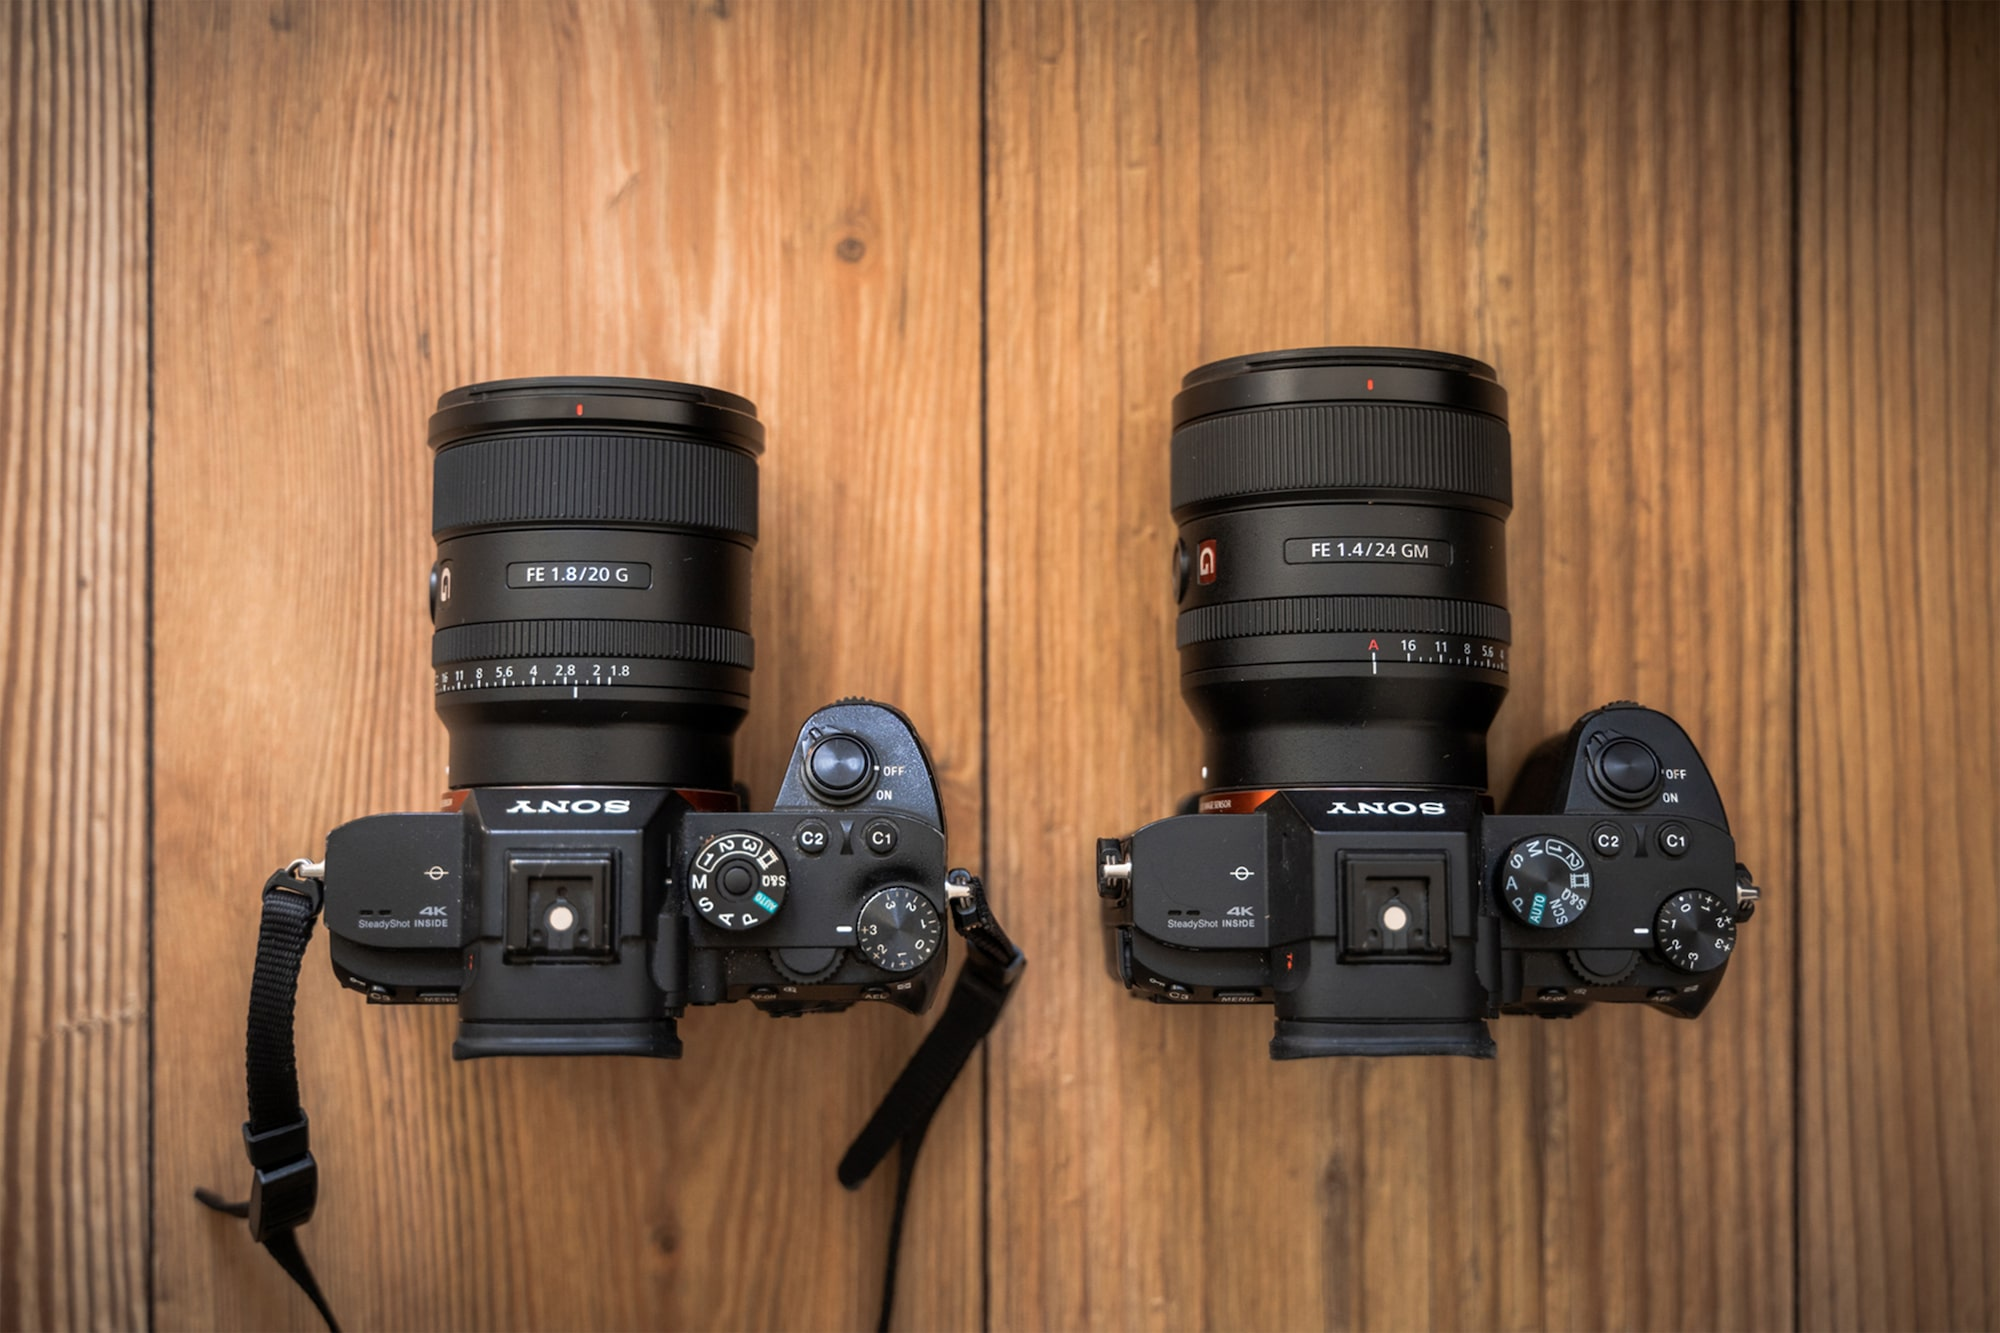 The 20mm f/1.8 G is slightly smaller and lighter than its stablemate 24mm f/1.4 G Master, whilst sharing a similar design.